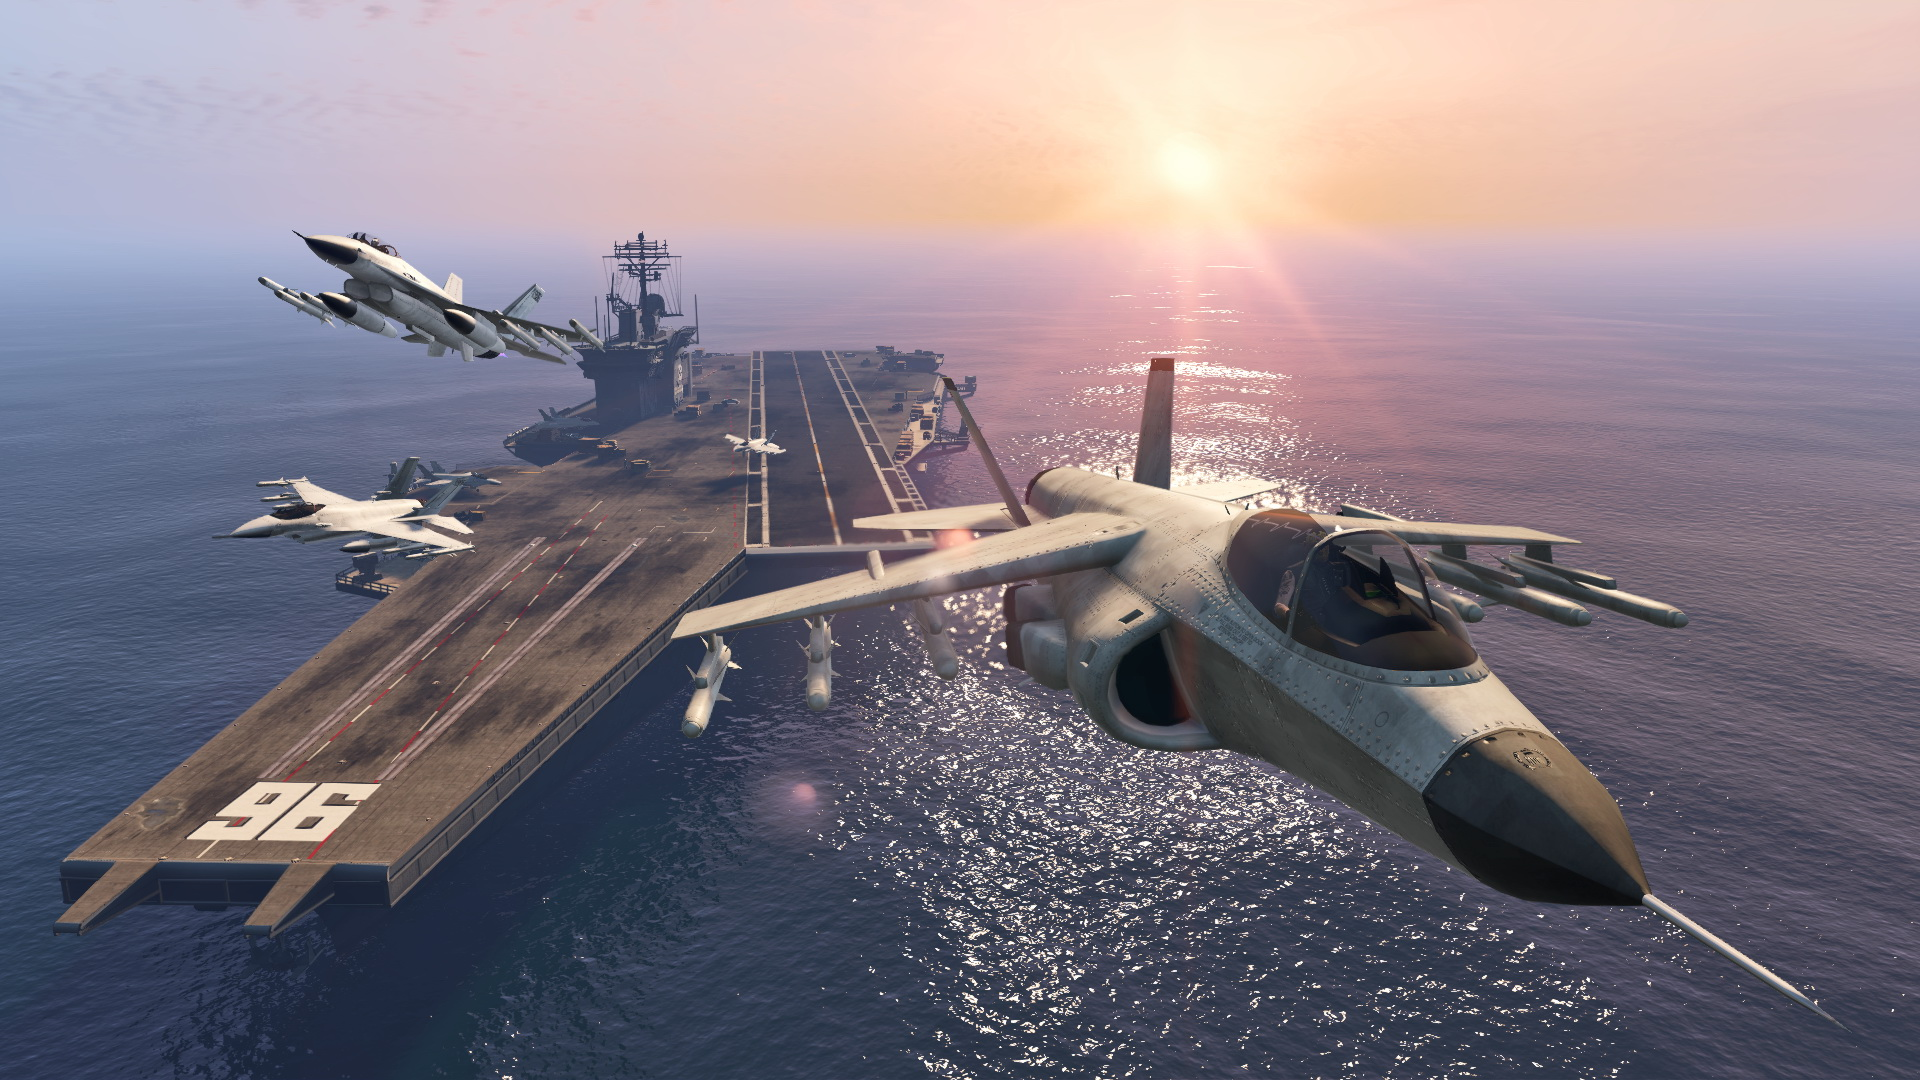 gta 4 helicopter cheat ps3 with Gta 5 Online Heists Get Aircraft Carrier Yacht Free Mode on Rockstar Reviewing Cargobob Spawn Level Restrictions besides Watch besides Grand Theft Auto 5 Gta V How To Get The Buzzard Attack Helicopter also Details furthermore Rockstar Game Tips Customizable Controls In Vice City 10th Anniv.